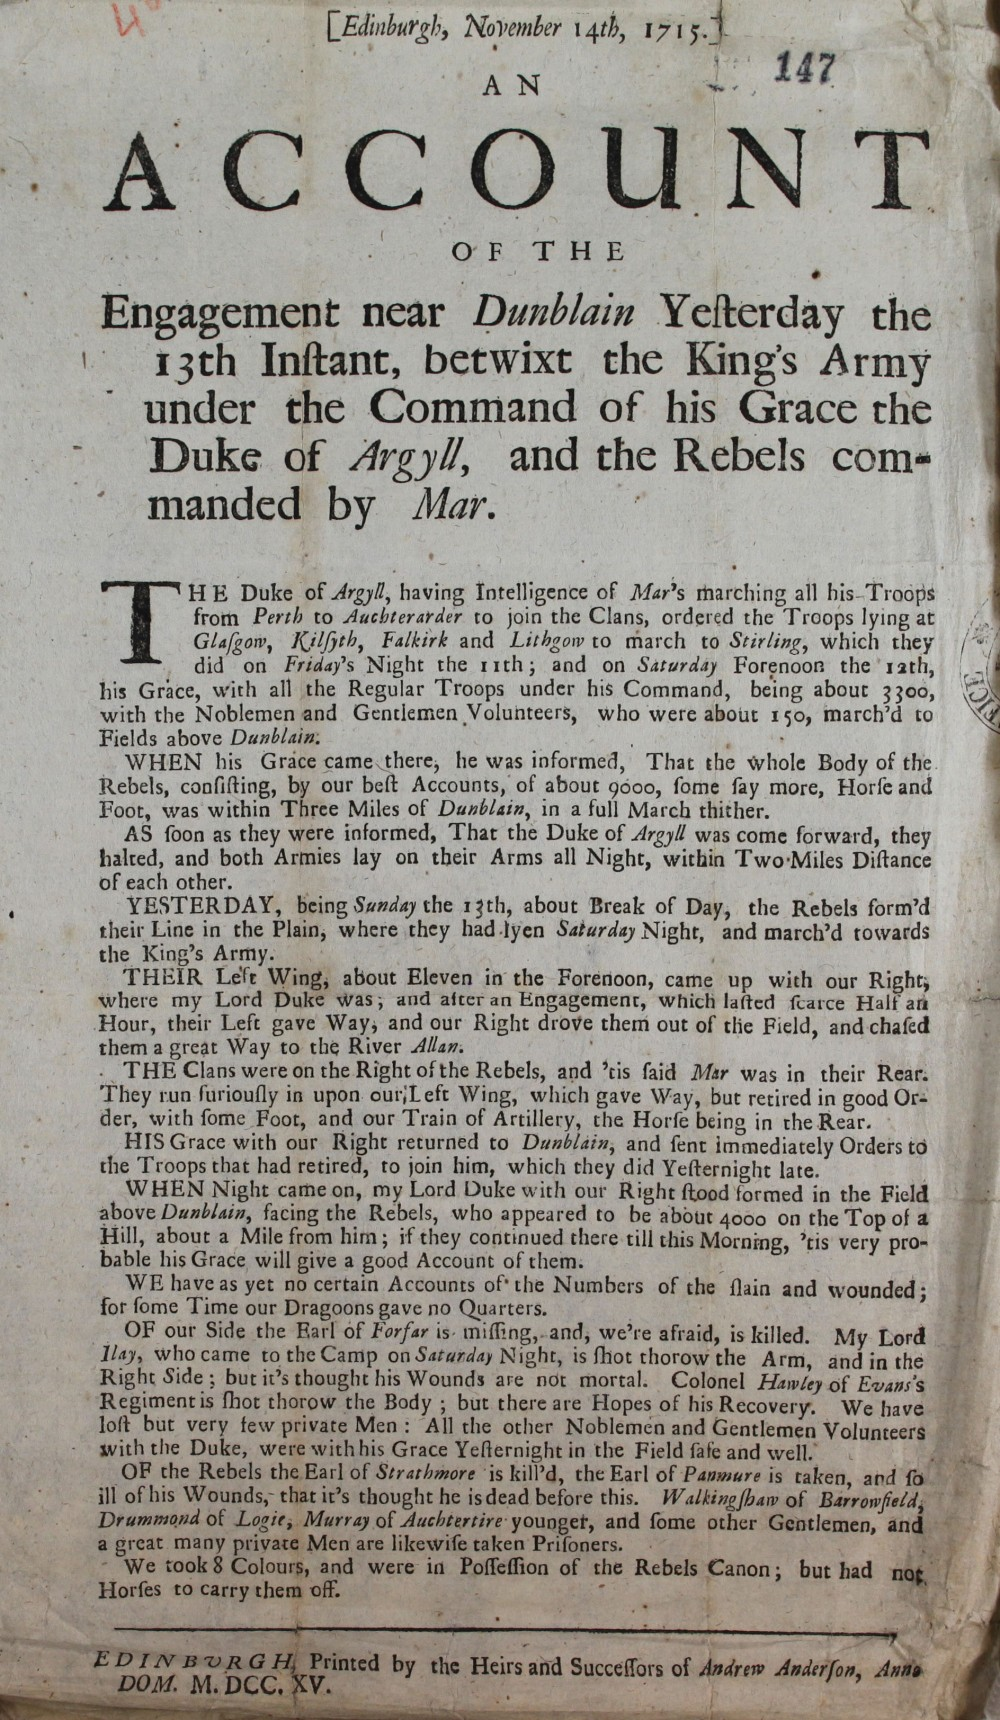 An account of a battle near Dunblane, 14th November 1715, printed in Edinburgh (SP 54/10/46A)